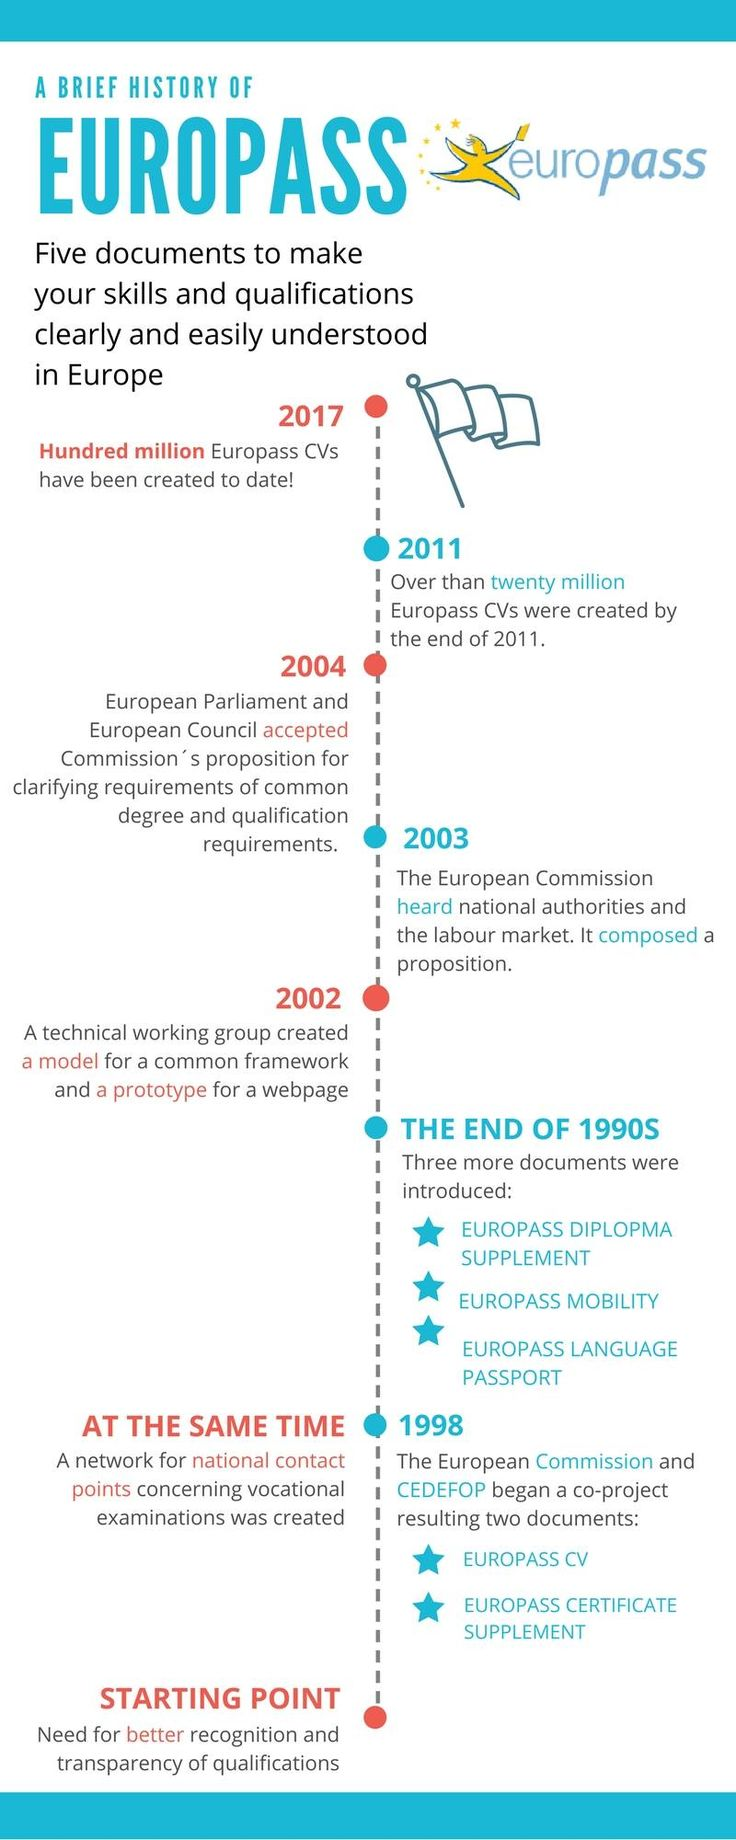 History of #Europass in one picture. Make your CV here: https://europass.cedefop.europa.eu/editors/en/cv/compose#